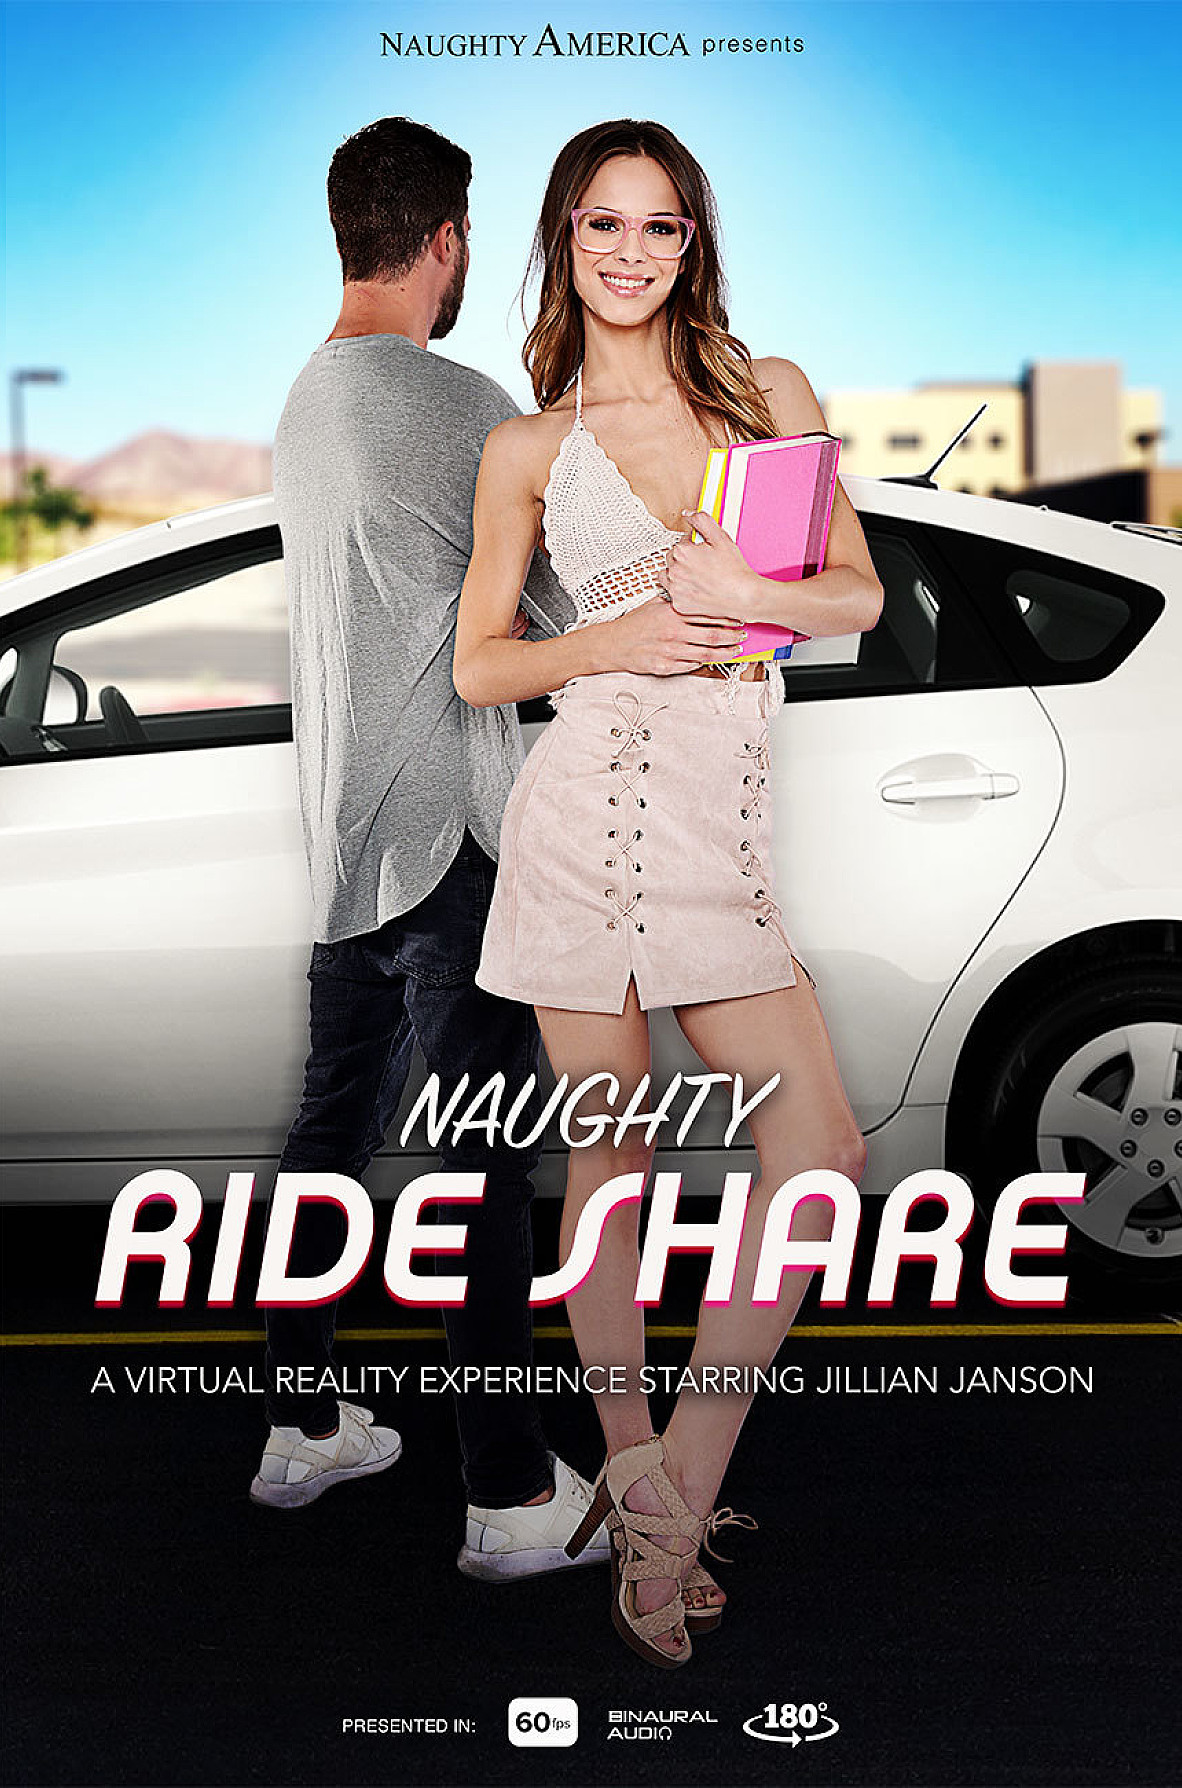 Watch Jillian Janson and Dylan Snow VR video in Naughty America